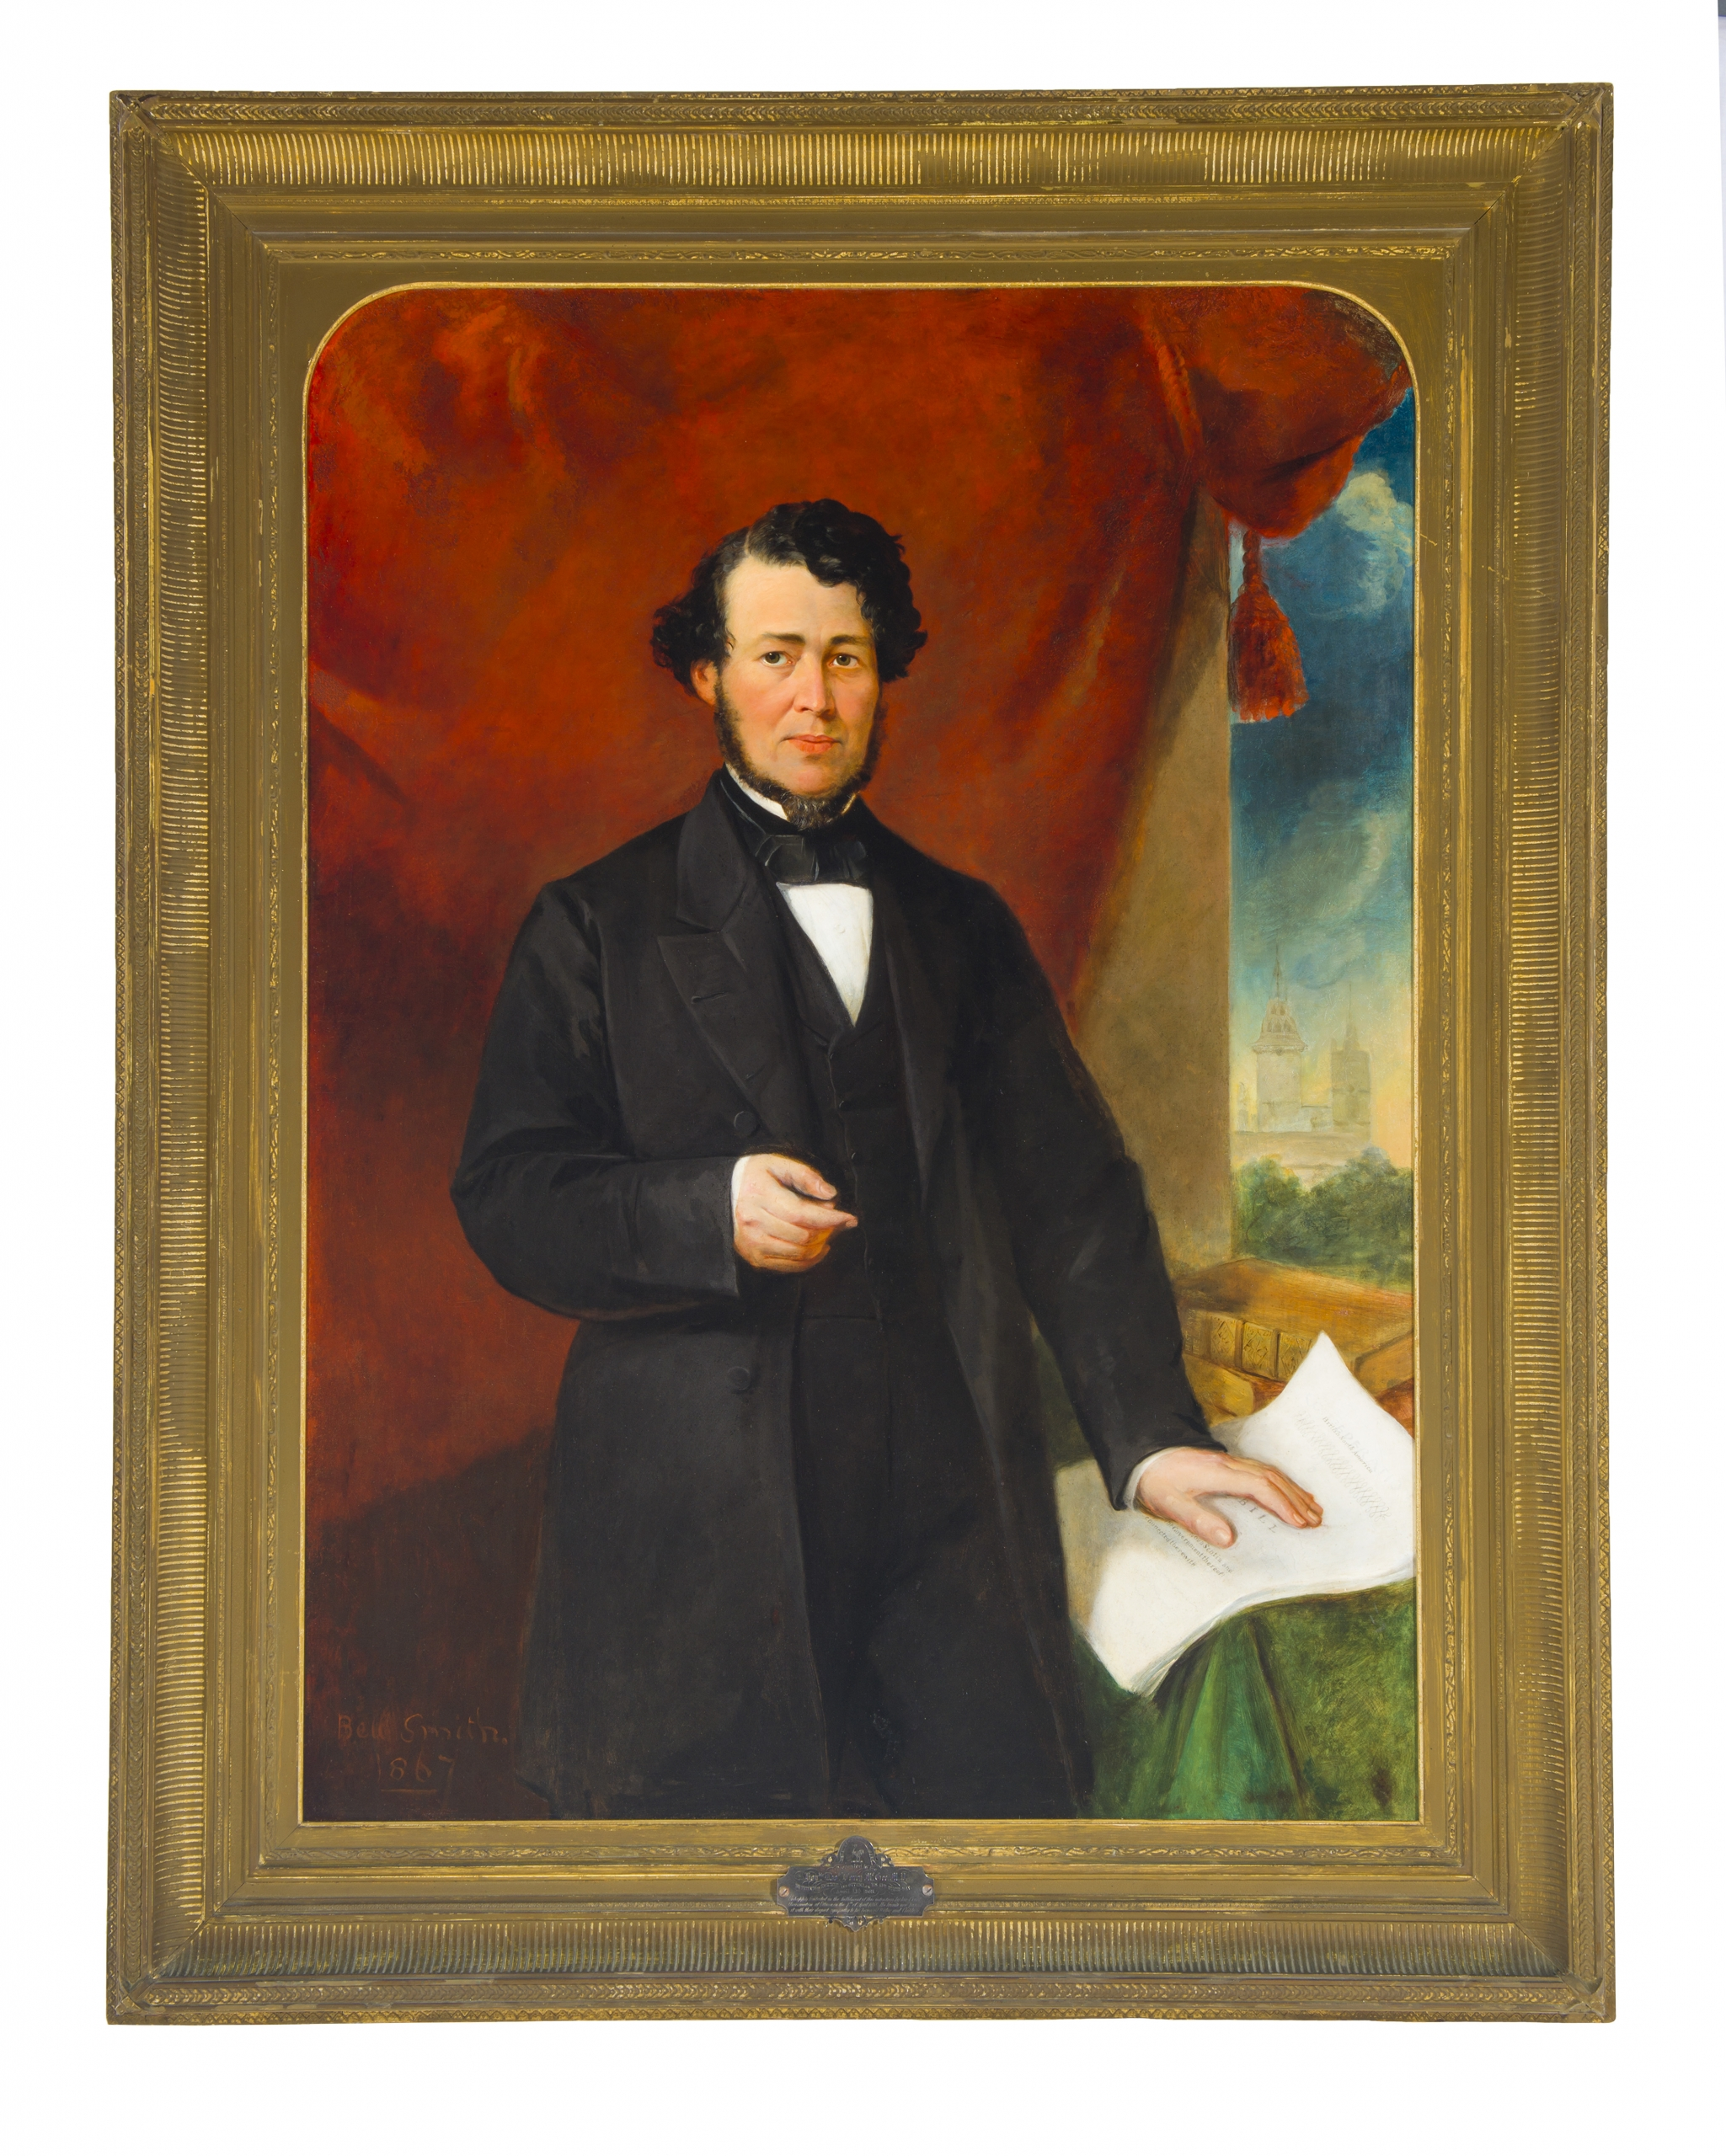 Painted portrait of a man with dark hair wearing a suit.